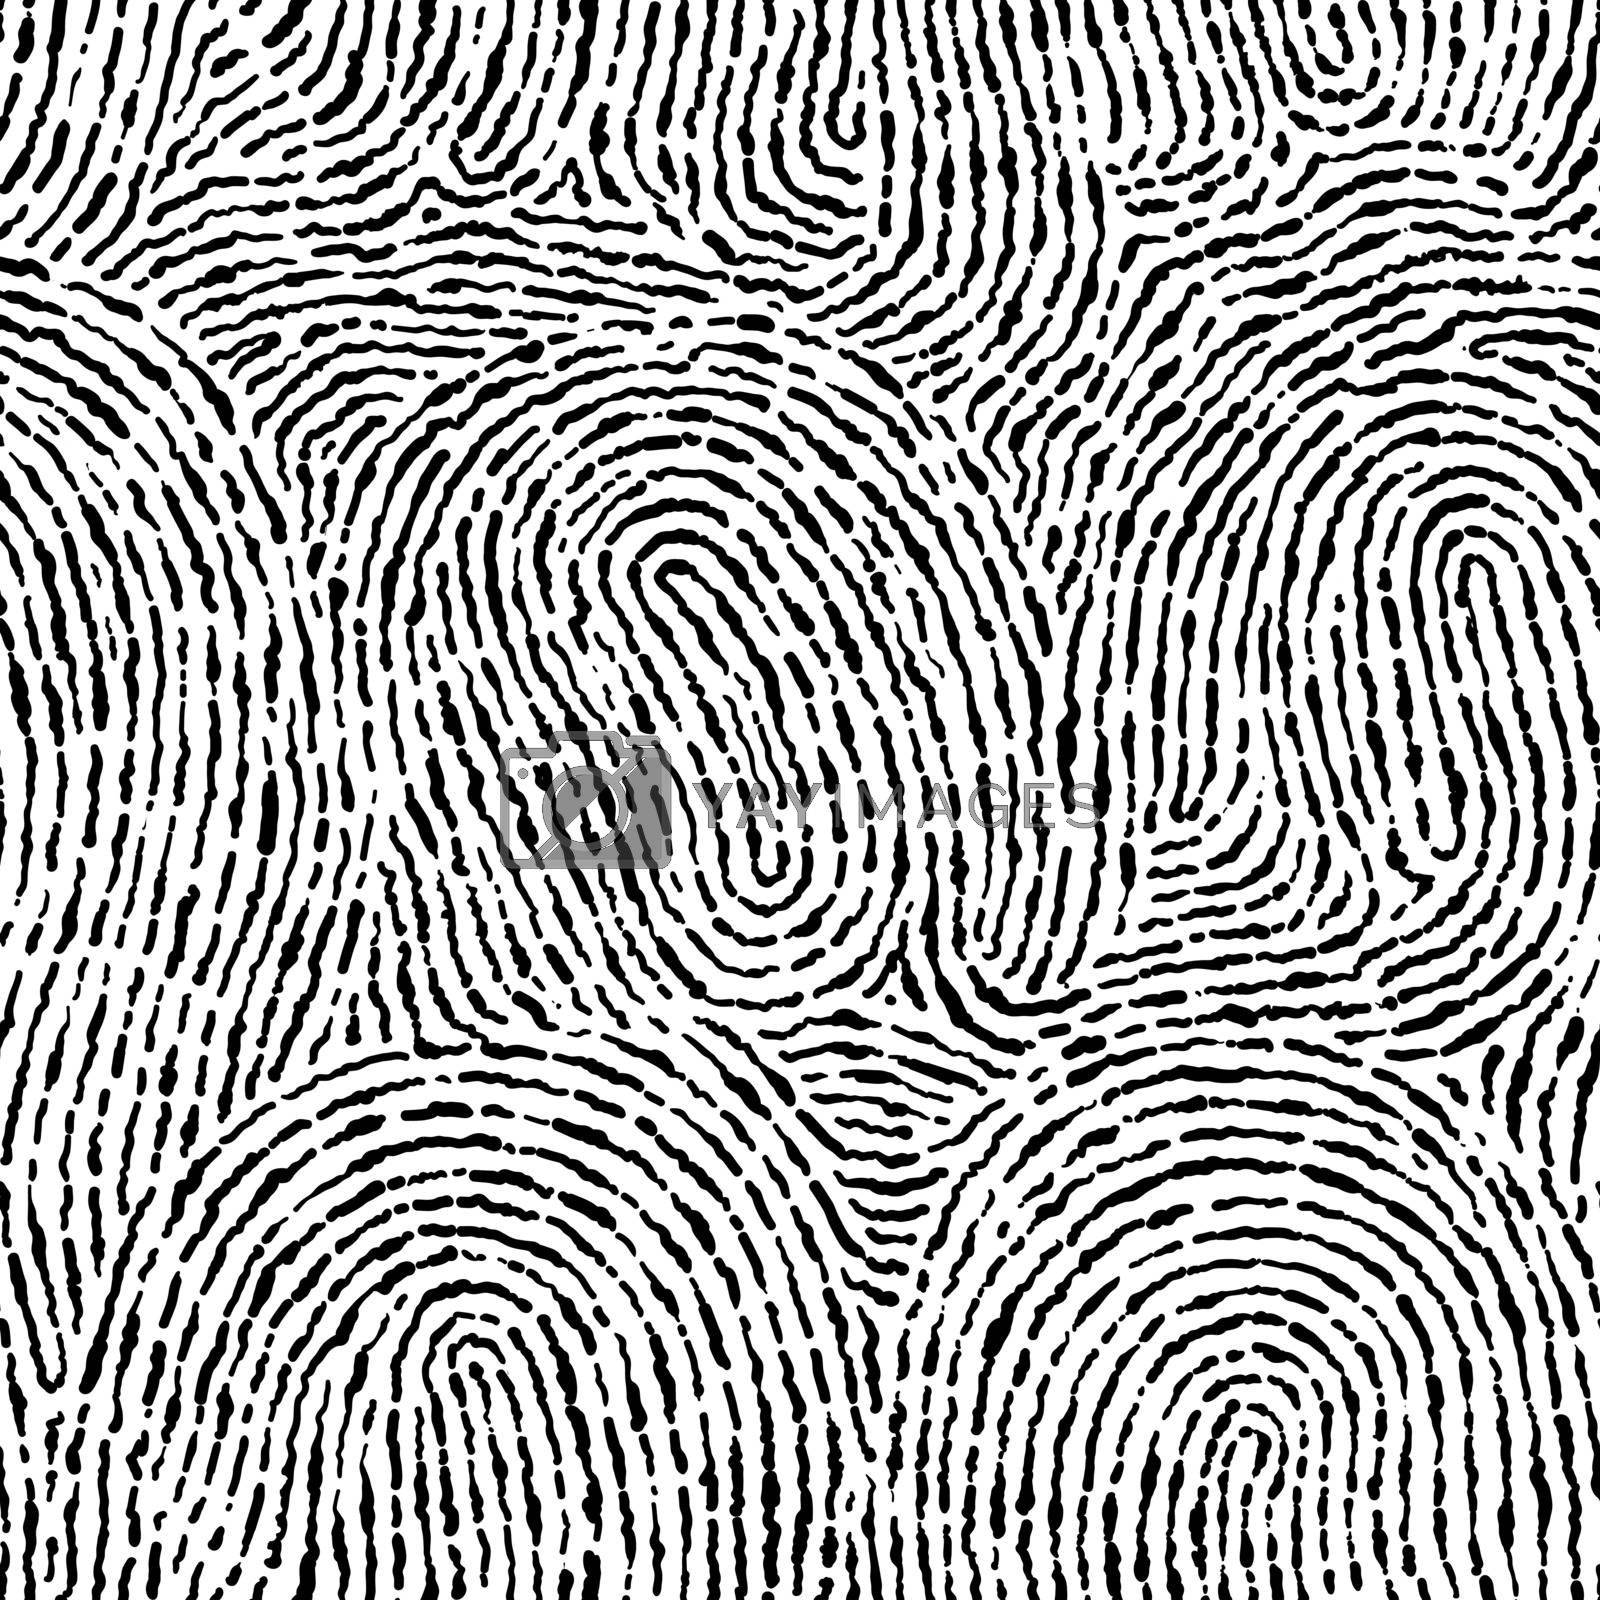 Fingerprint seamless background on square shape. by narinbg